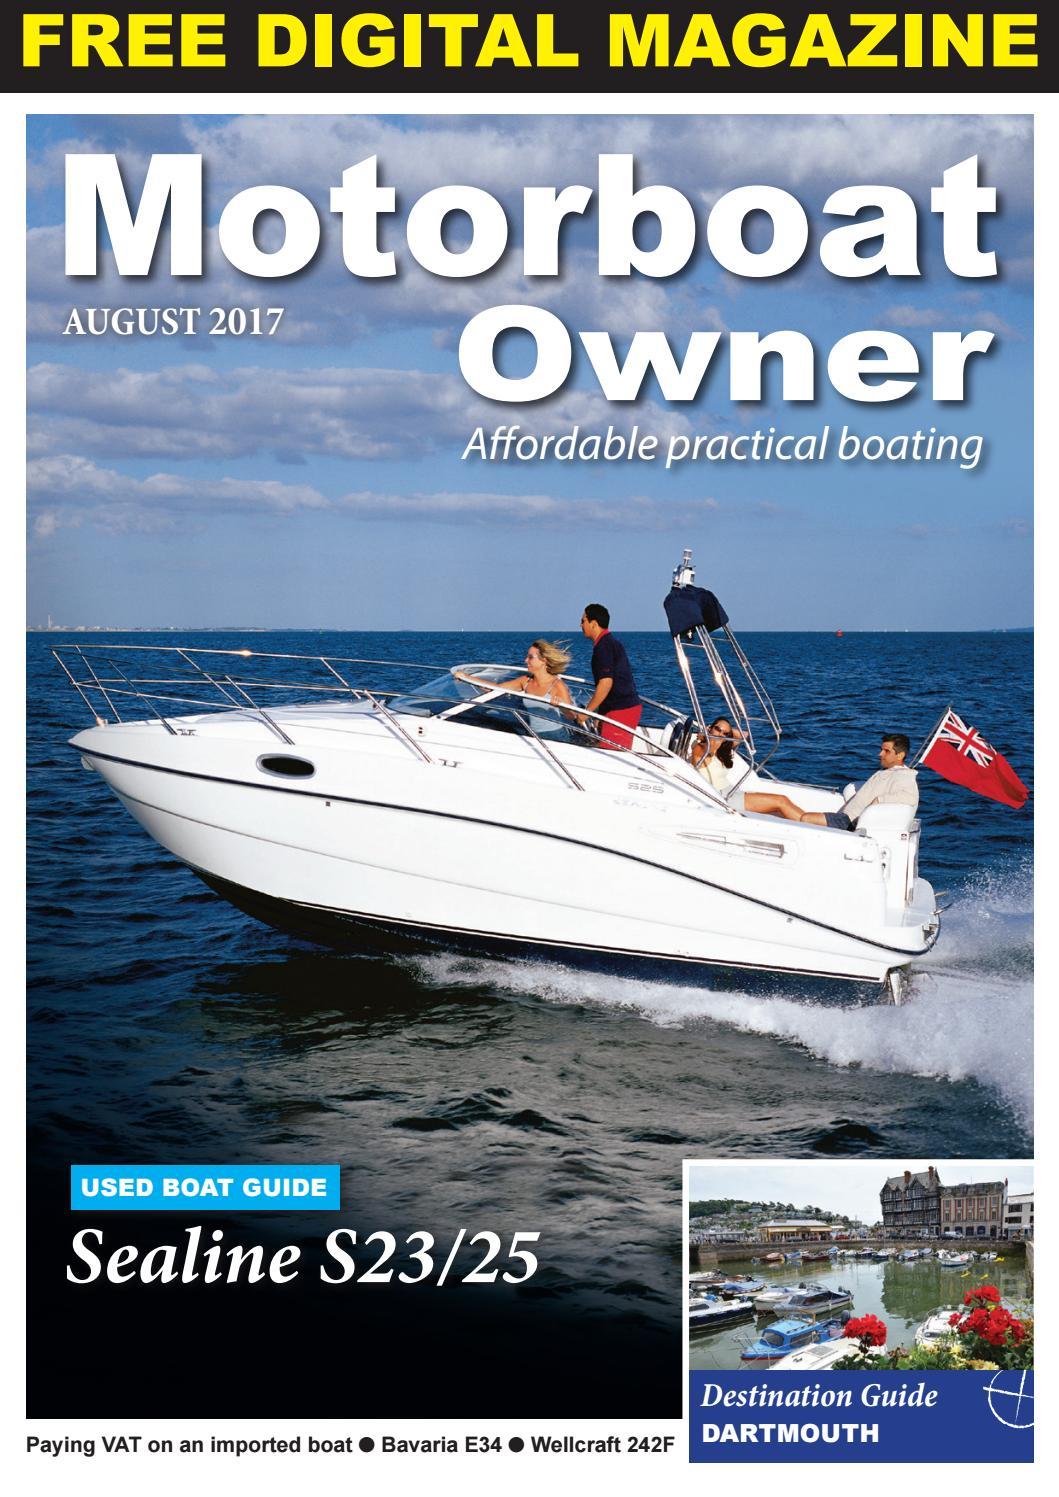 Motorboat Owner January 2018 By Digital Marine Media Ltd Issuu Volvo V50 Fuse Box Problems